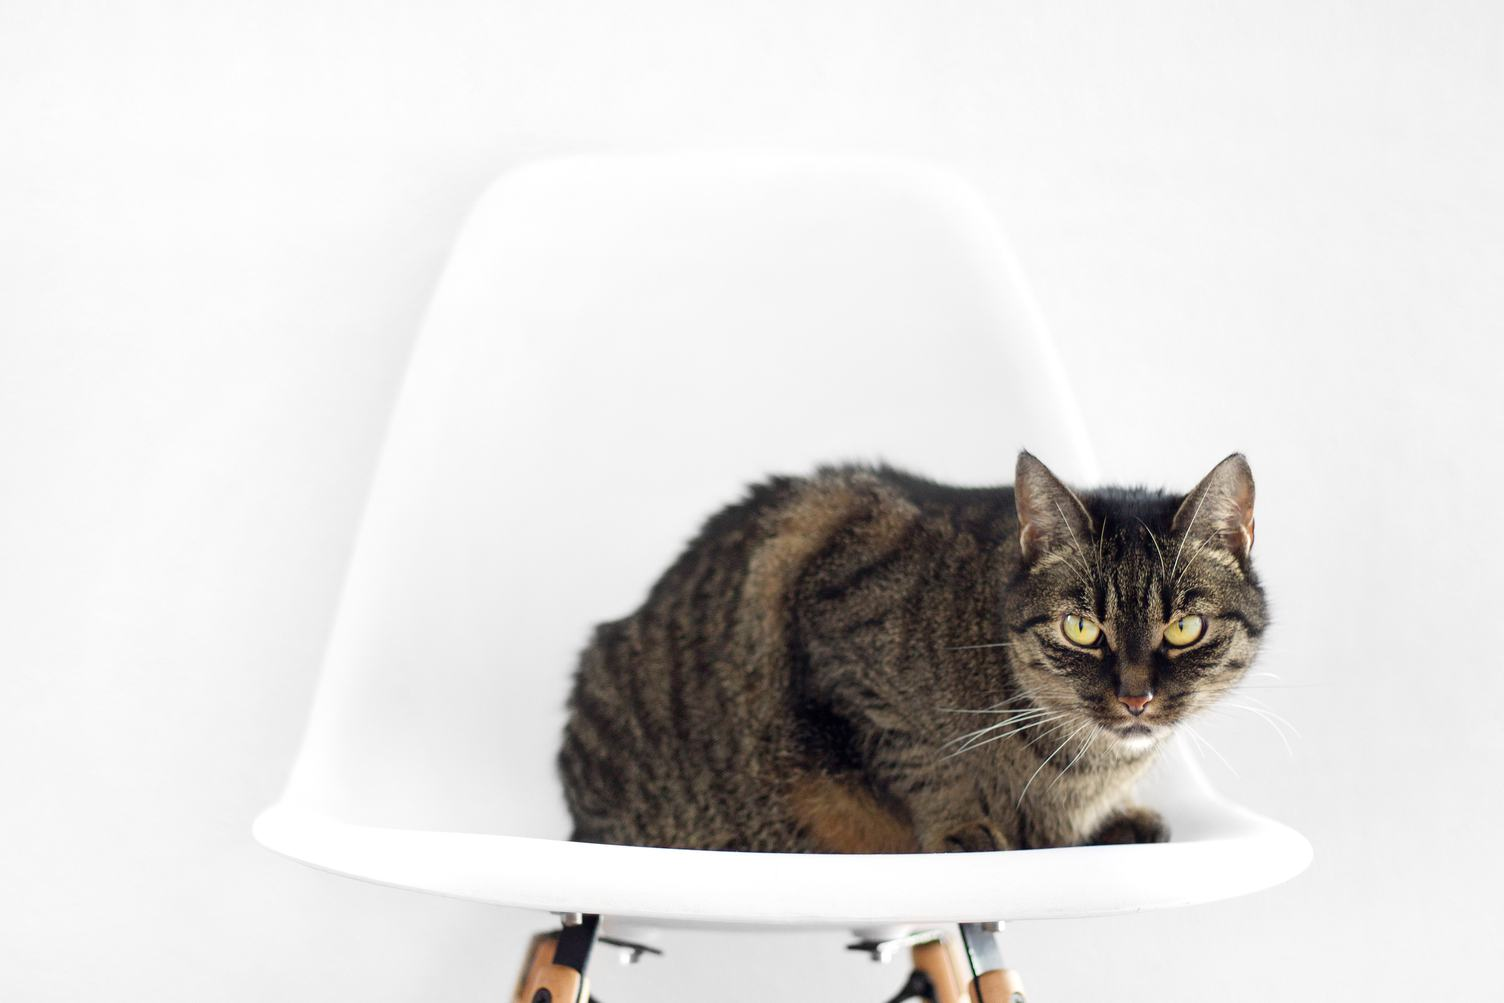 Gray Tabby Cat Sitting on White Chair on Light Background